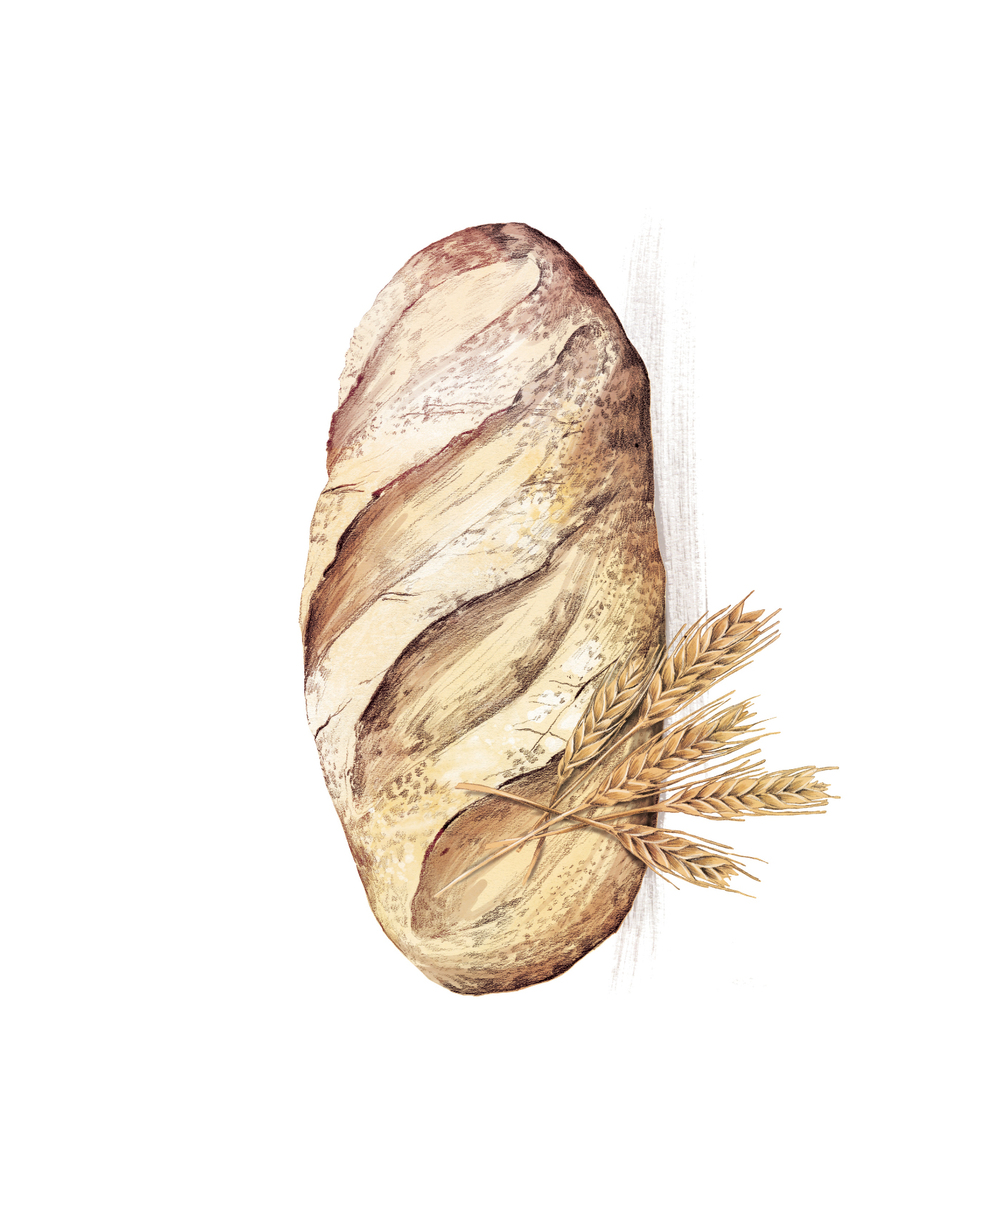 fig. 2.  Bread and wheat illustration